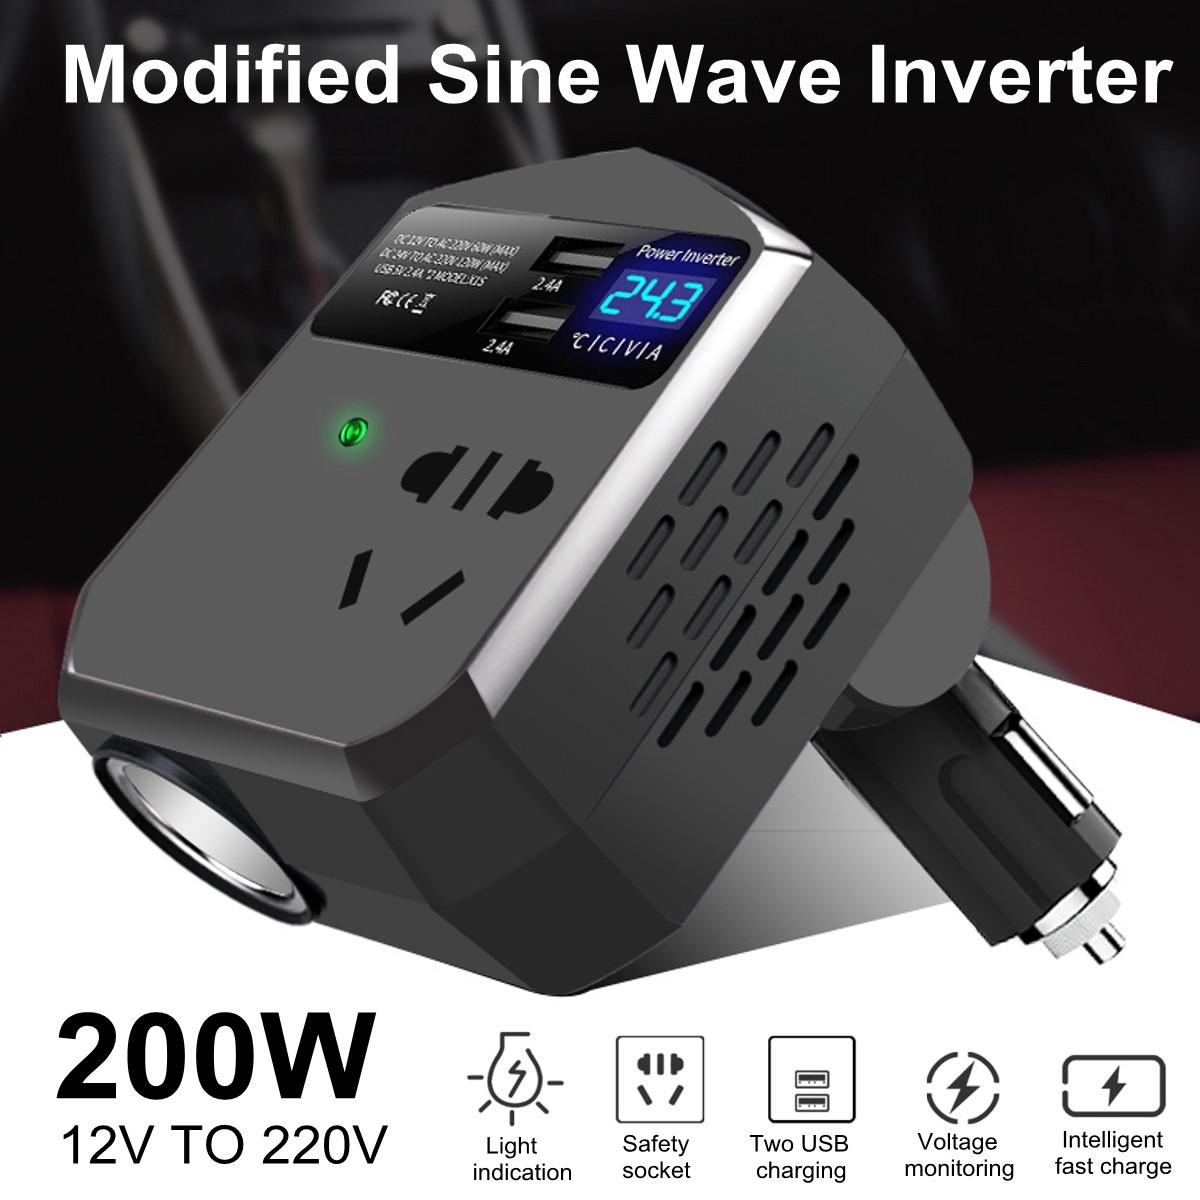 Mini <font><b>Auto</b></font> Power Inverter 12 V 200 W Power Inverter 12 V/24 V <font><b>Auto</b></font> Adapter Modifizierte Sinus Welle inverter LCD Display Schnelle Ladung image